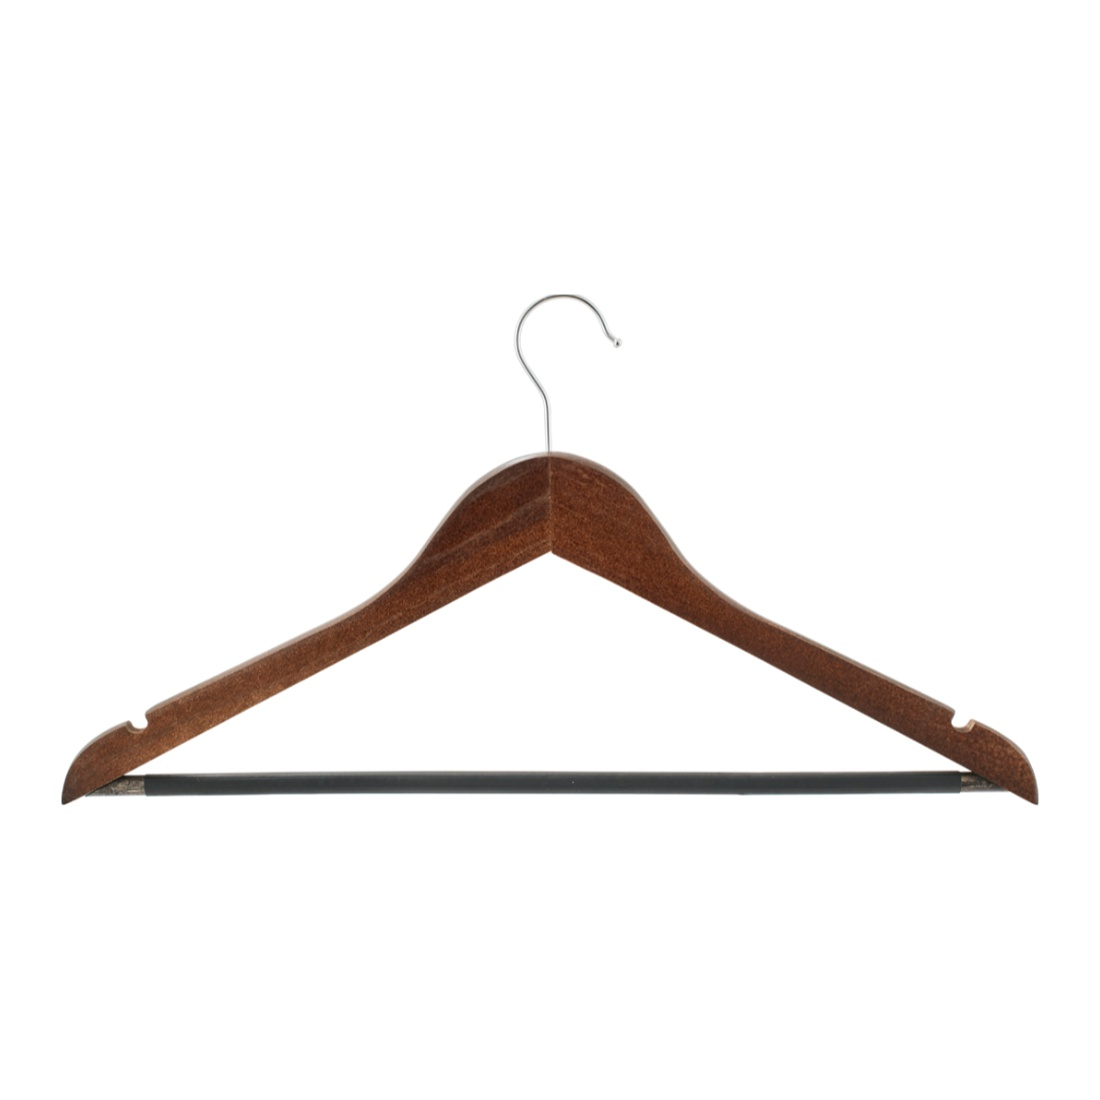 Wooden Hanger Set Of 5 Wood Hangers & Hooks in Beige Colour by Living Essence